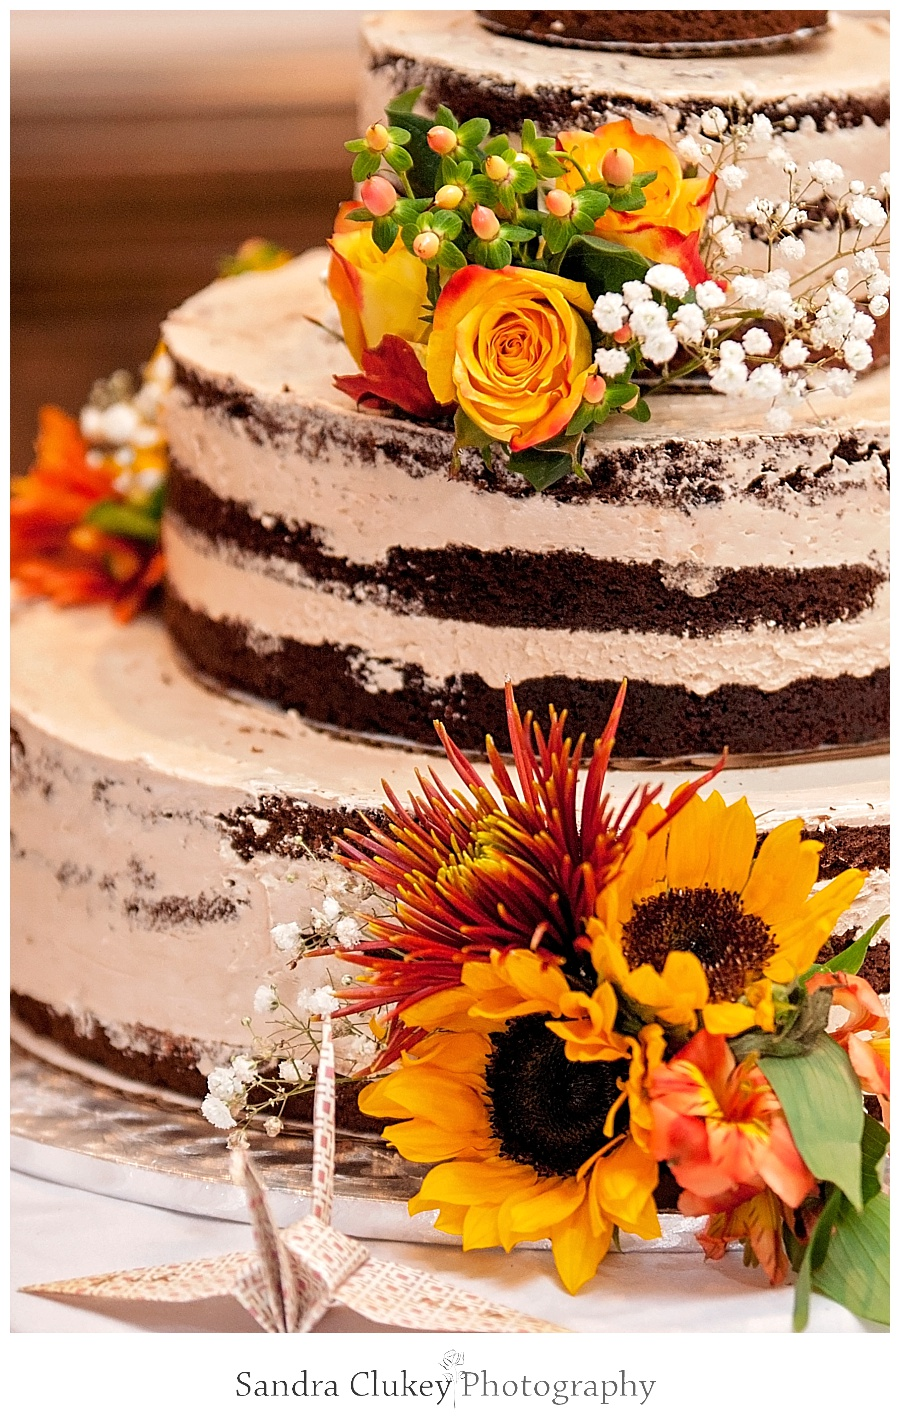 Special wedding cake offered